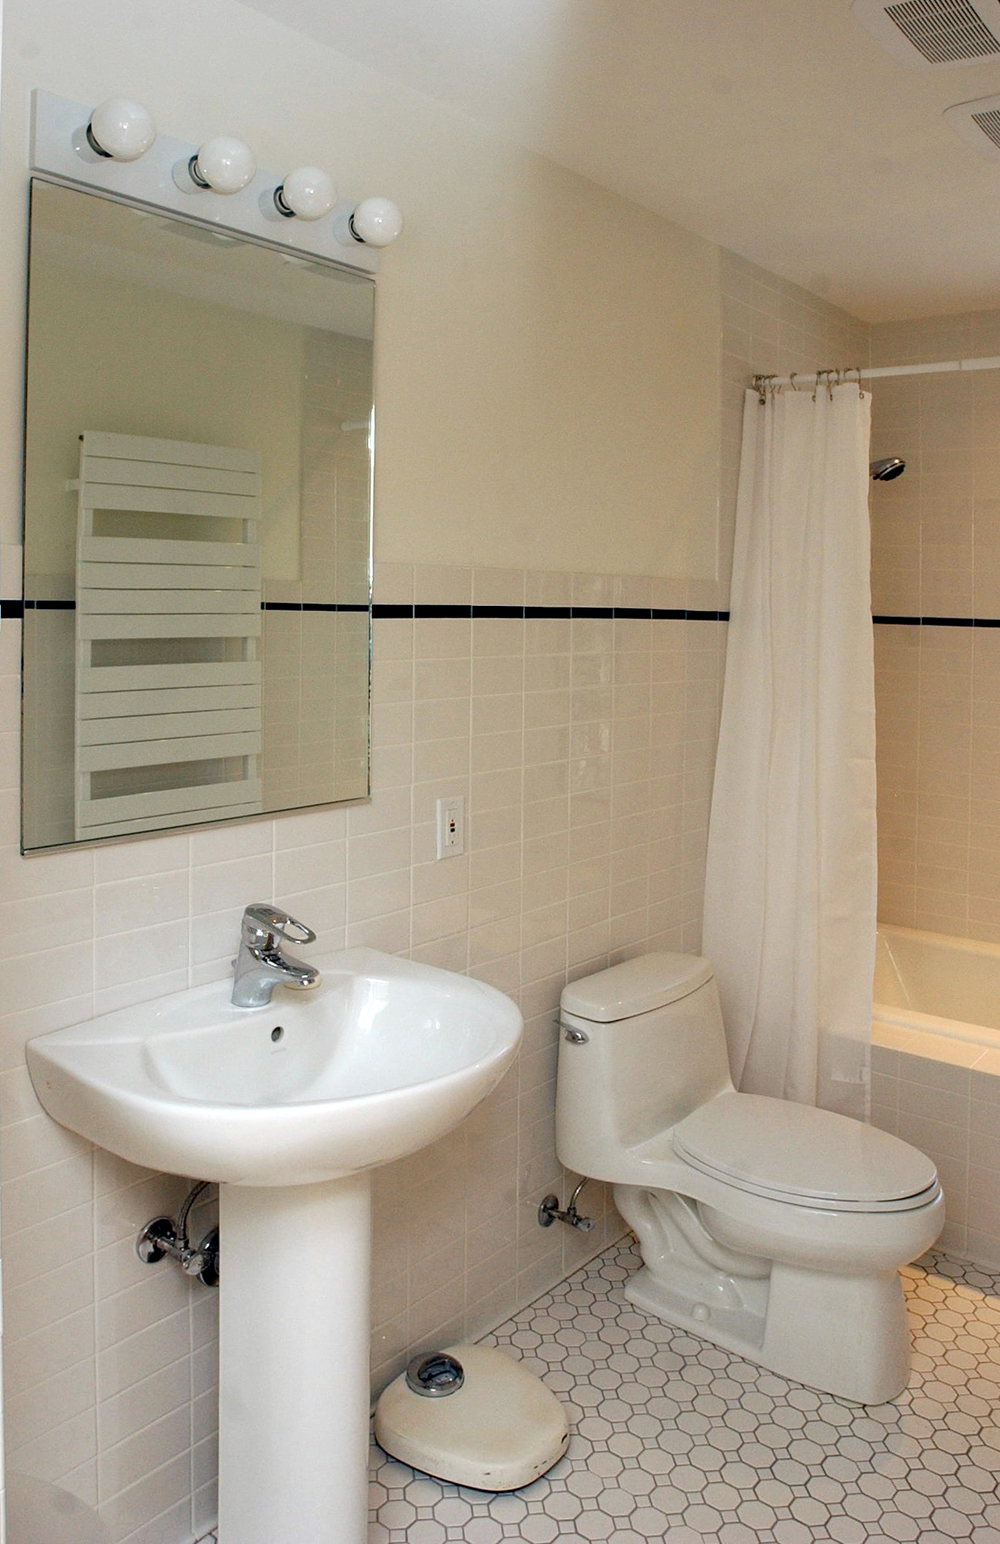 Brandes Interior Bathroom 1.jpg